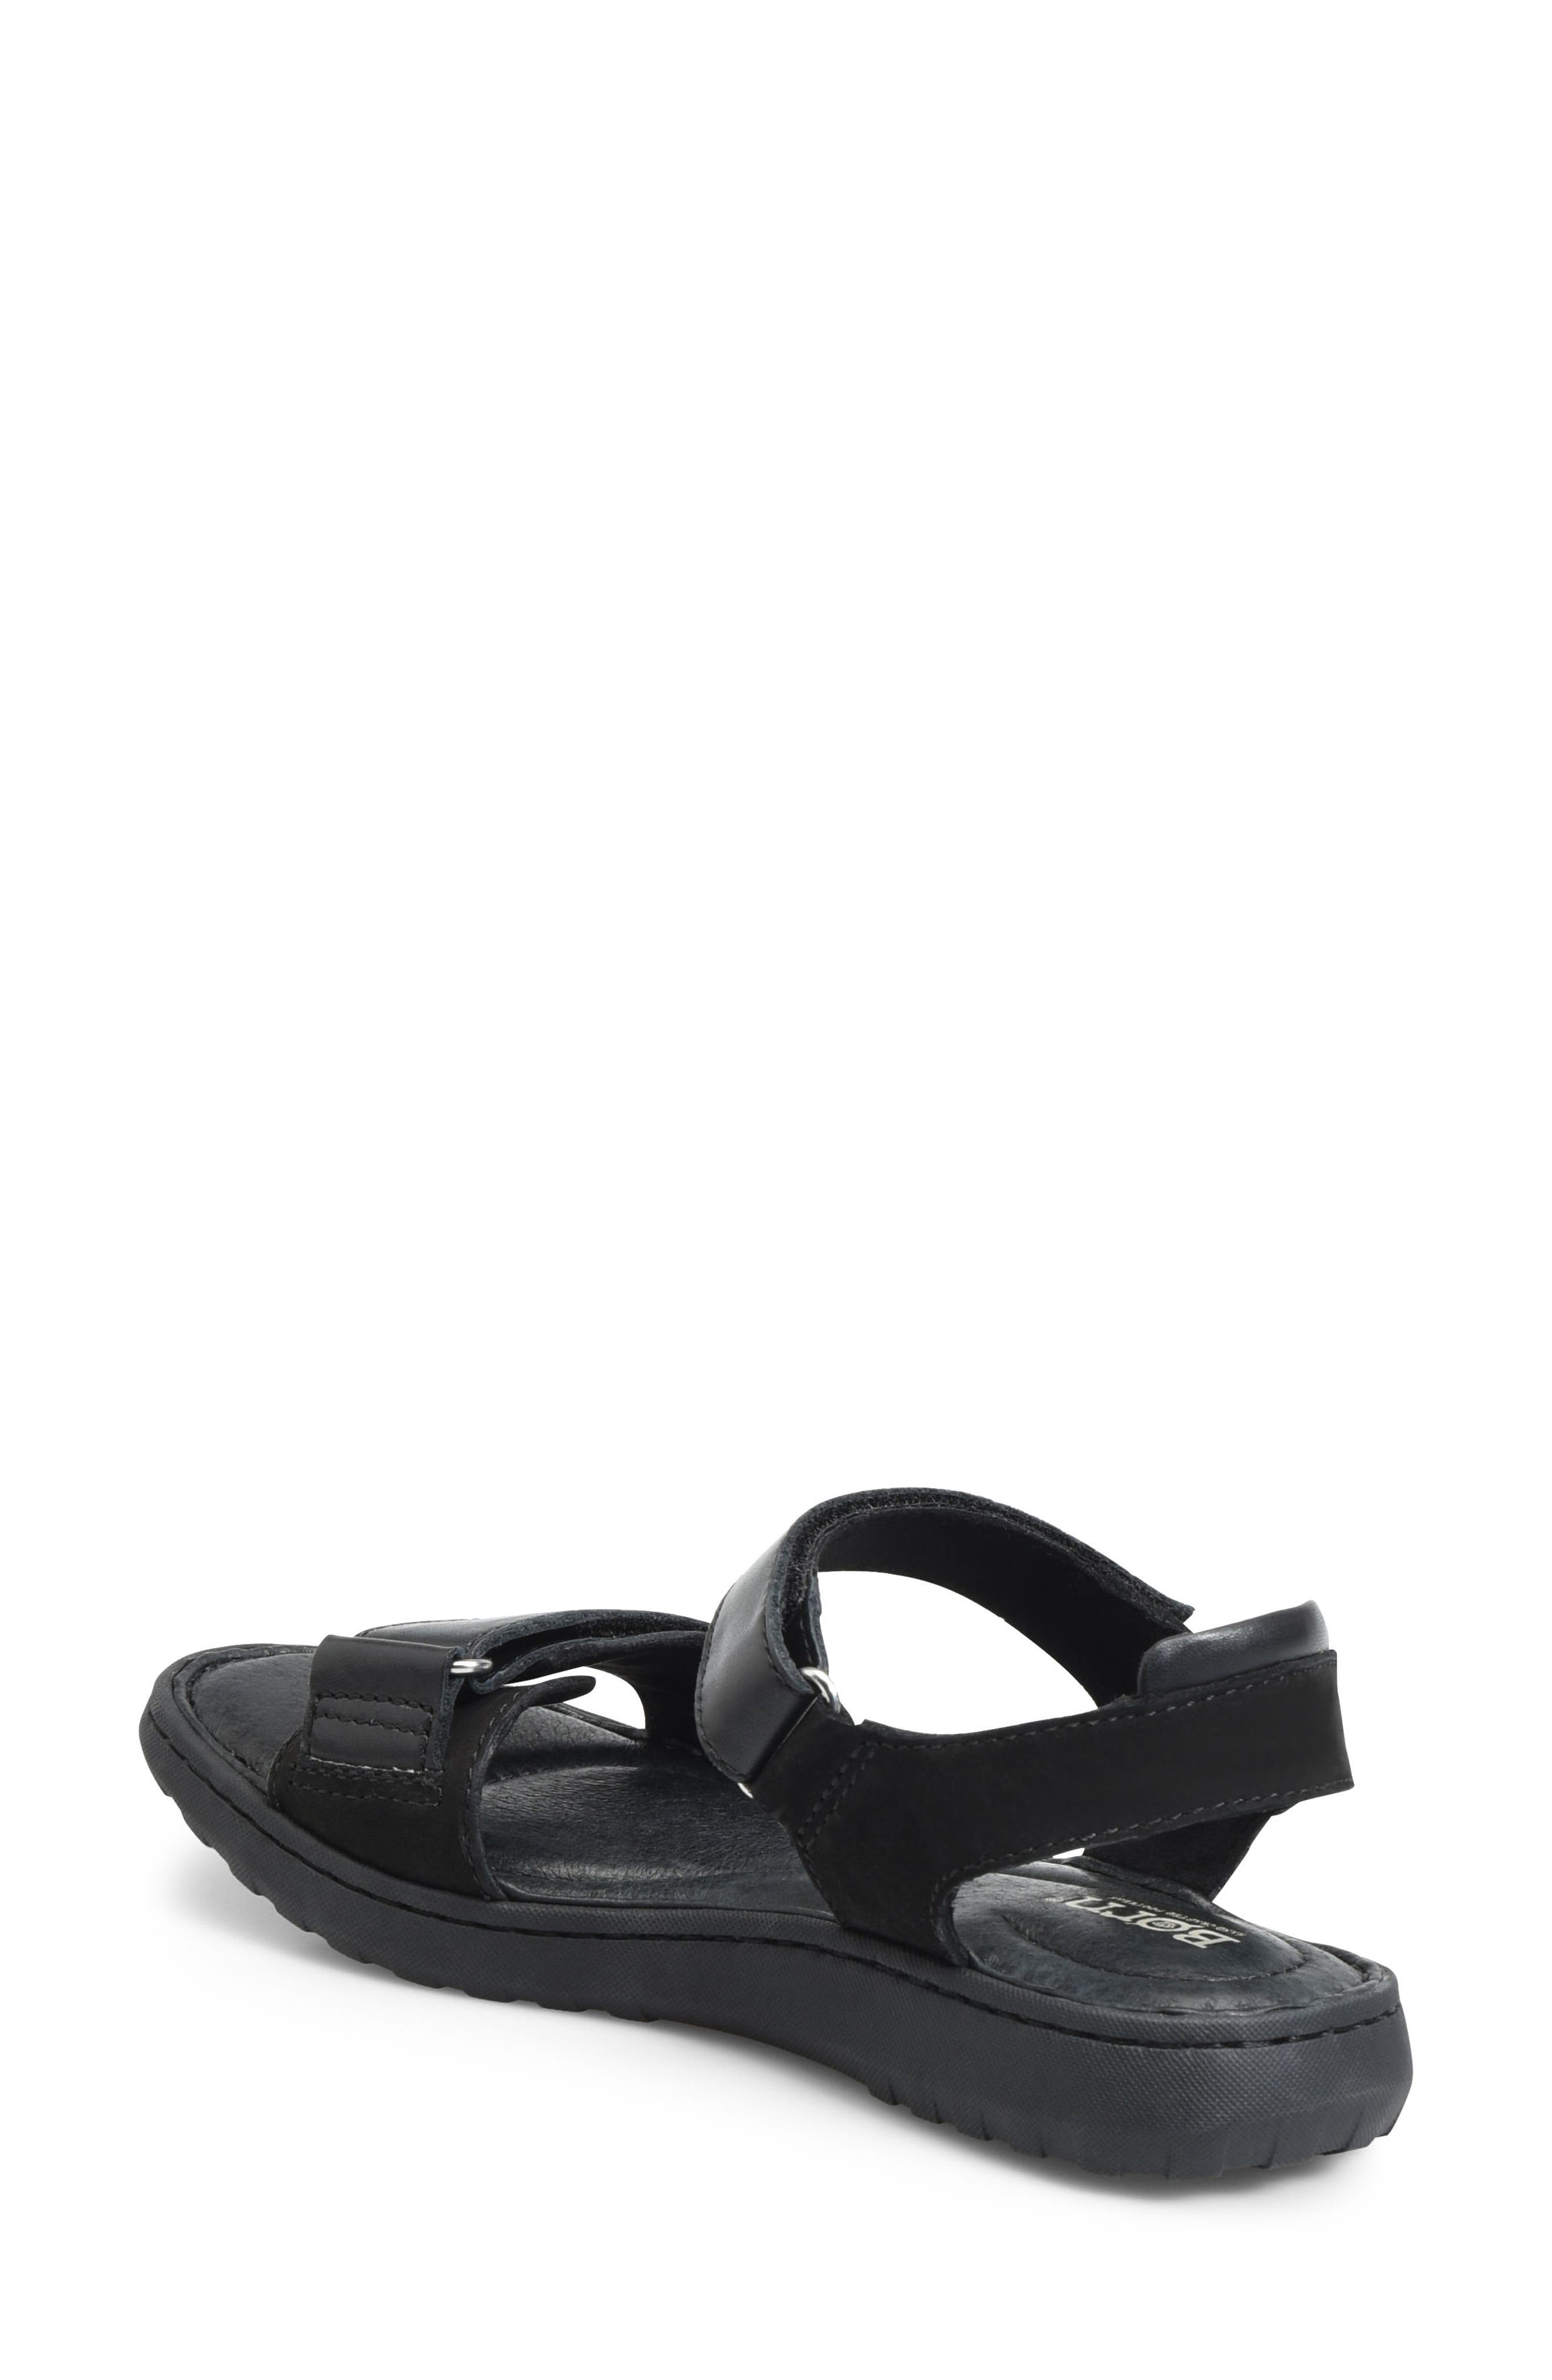 Nirvana Sandal,                             Alternate thumbnail 2, color,                             Black Leather